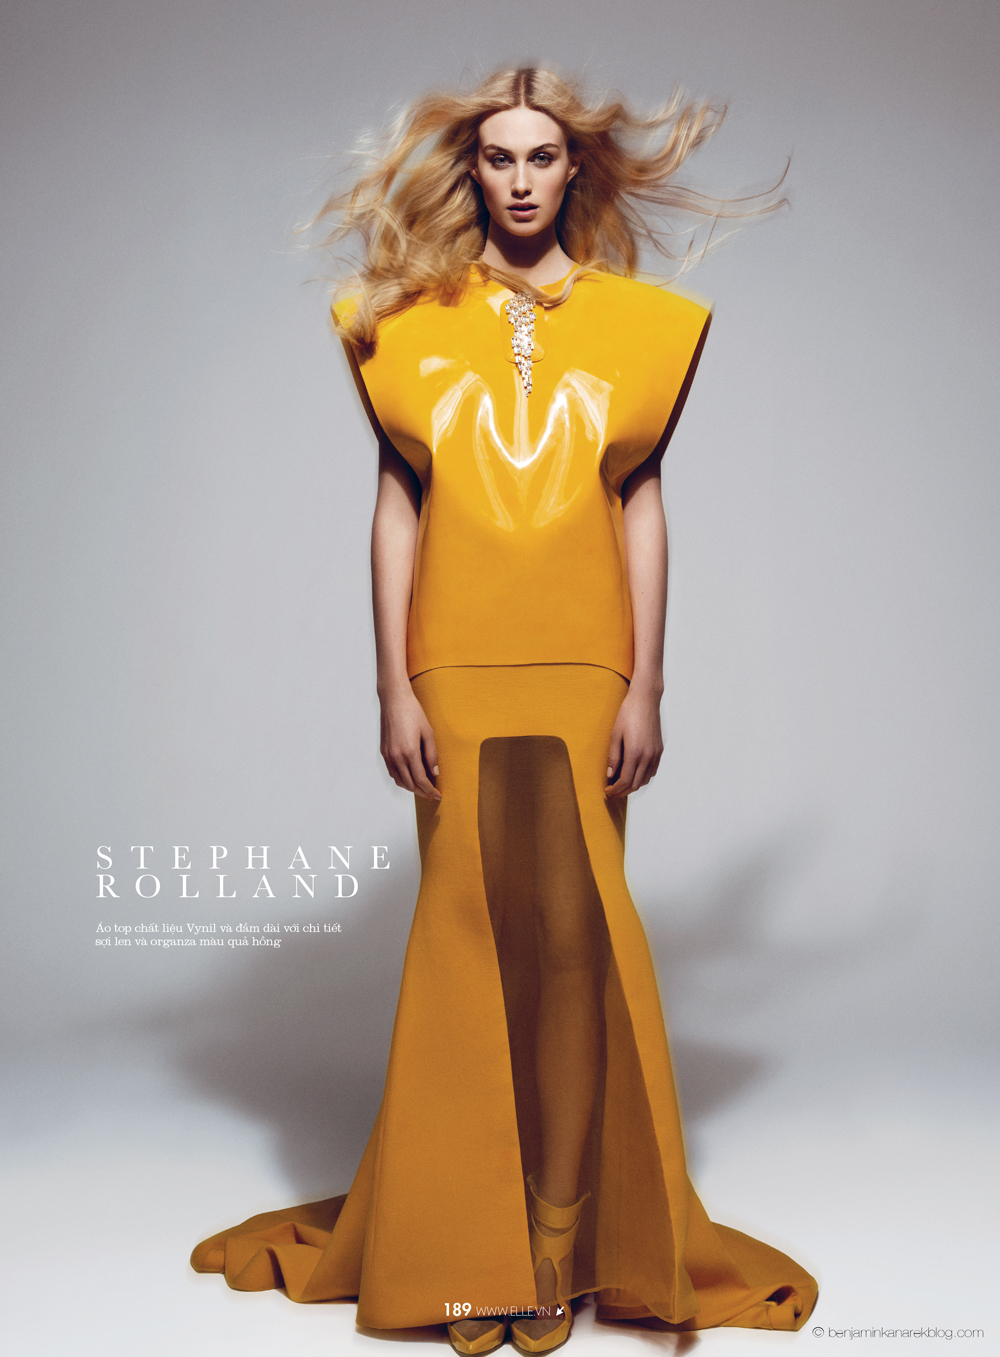 Dauphine McKee in Stéphane Rolland Haute Couture © Benjamin Kanarek for ELLE Vietnam April 2014